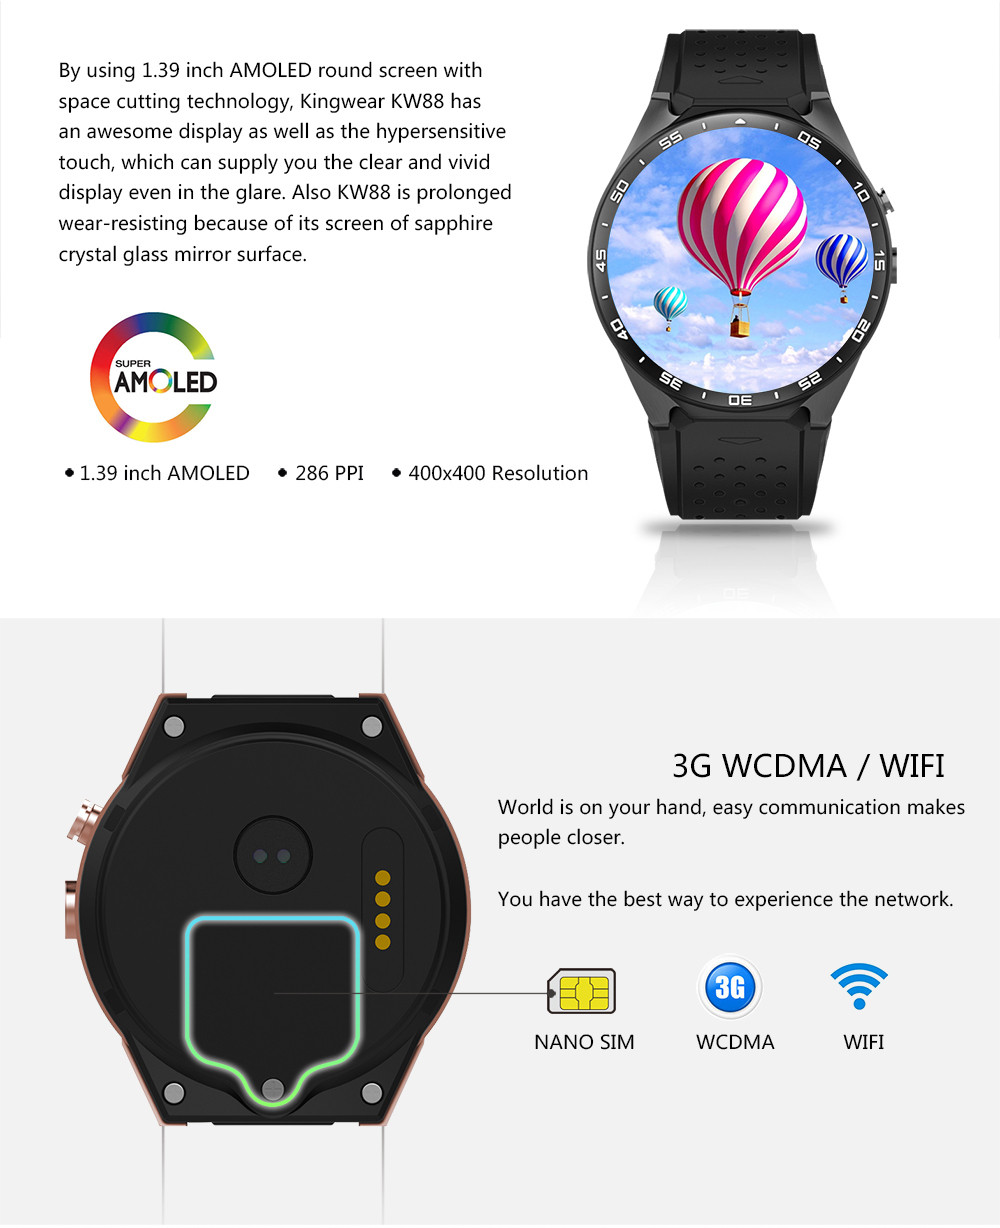 kw88 Android 5.1 Smart Watch 512MB + 4GB Bluetooth 4.0 WIFI 3G Smartwatch Phone Wristwatch Support Google Voice GPS Map стоимость